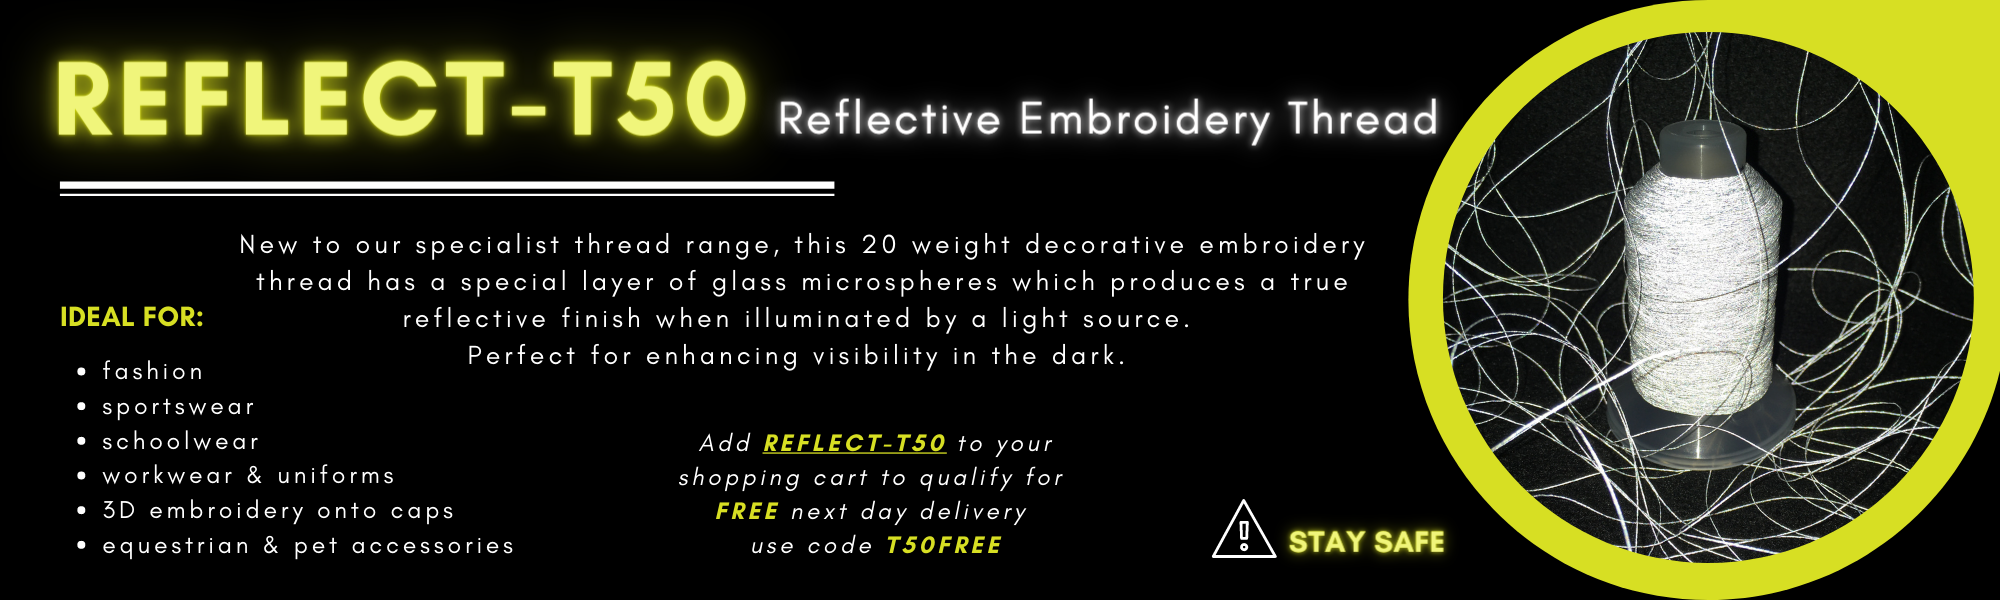 REFLECTIVE THREAD OFFER